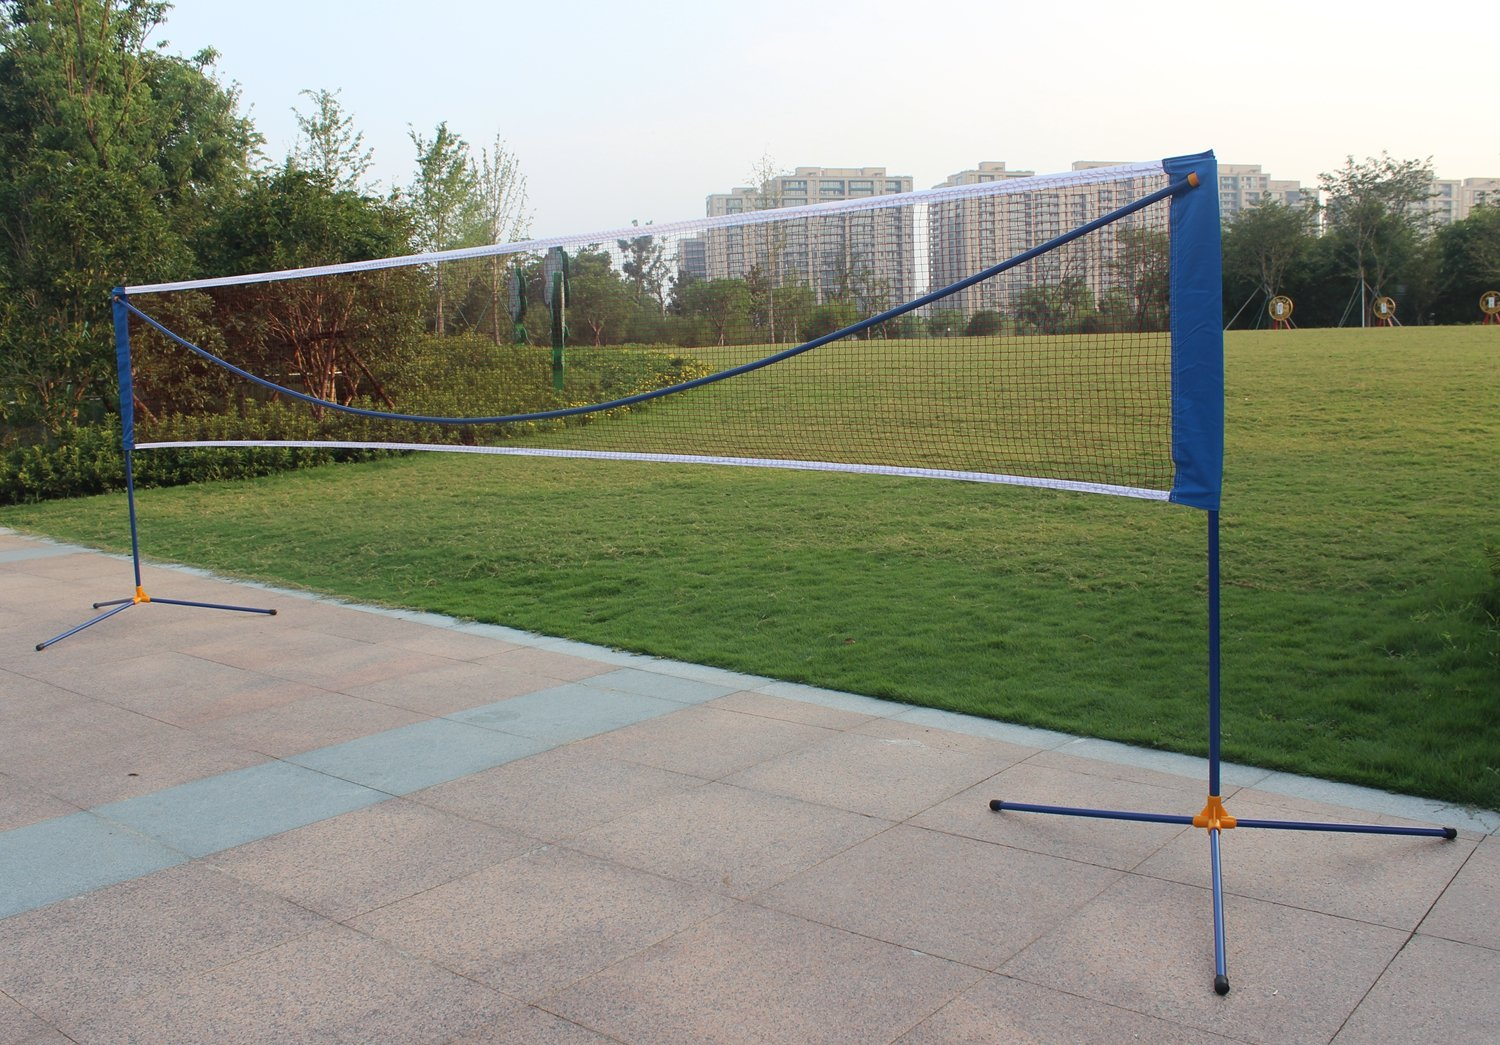 Sports God Portable Large Volleyball Badminton Tennis Net with Carrying Bag Stand/Frame (17 ft)